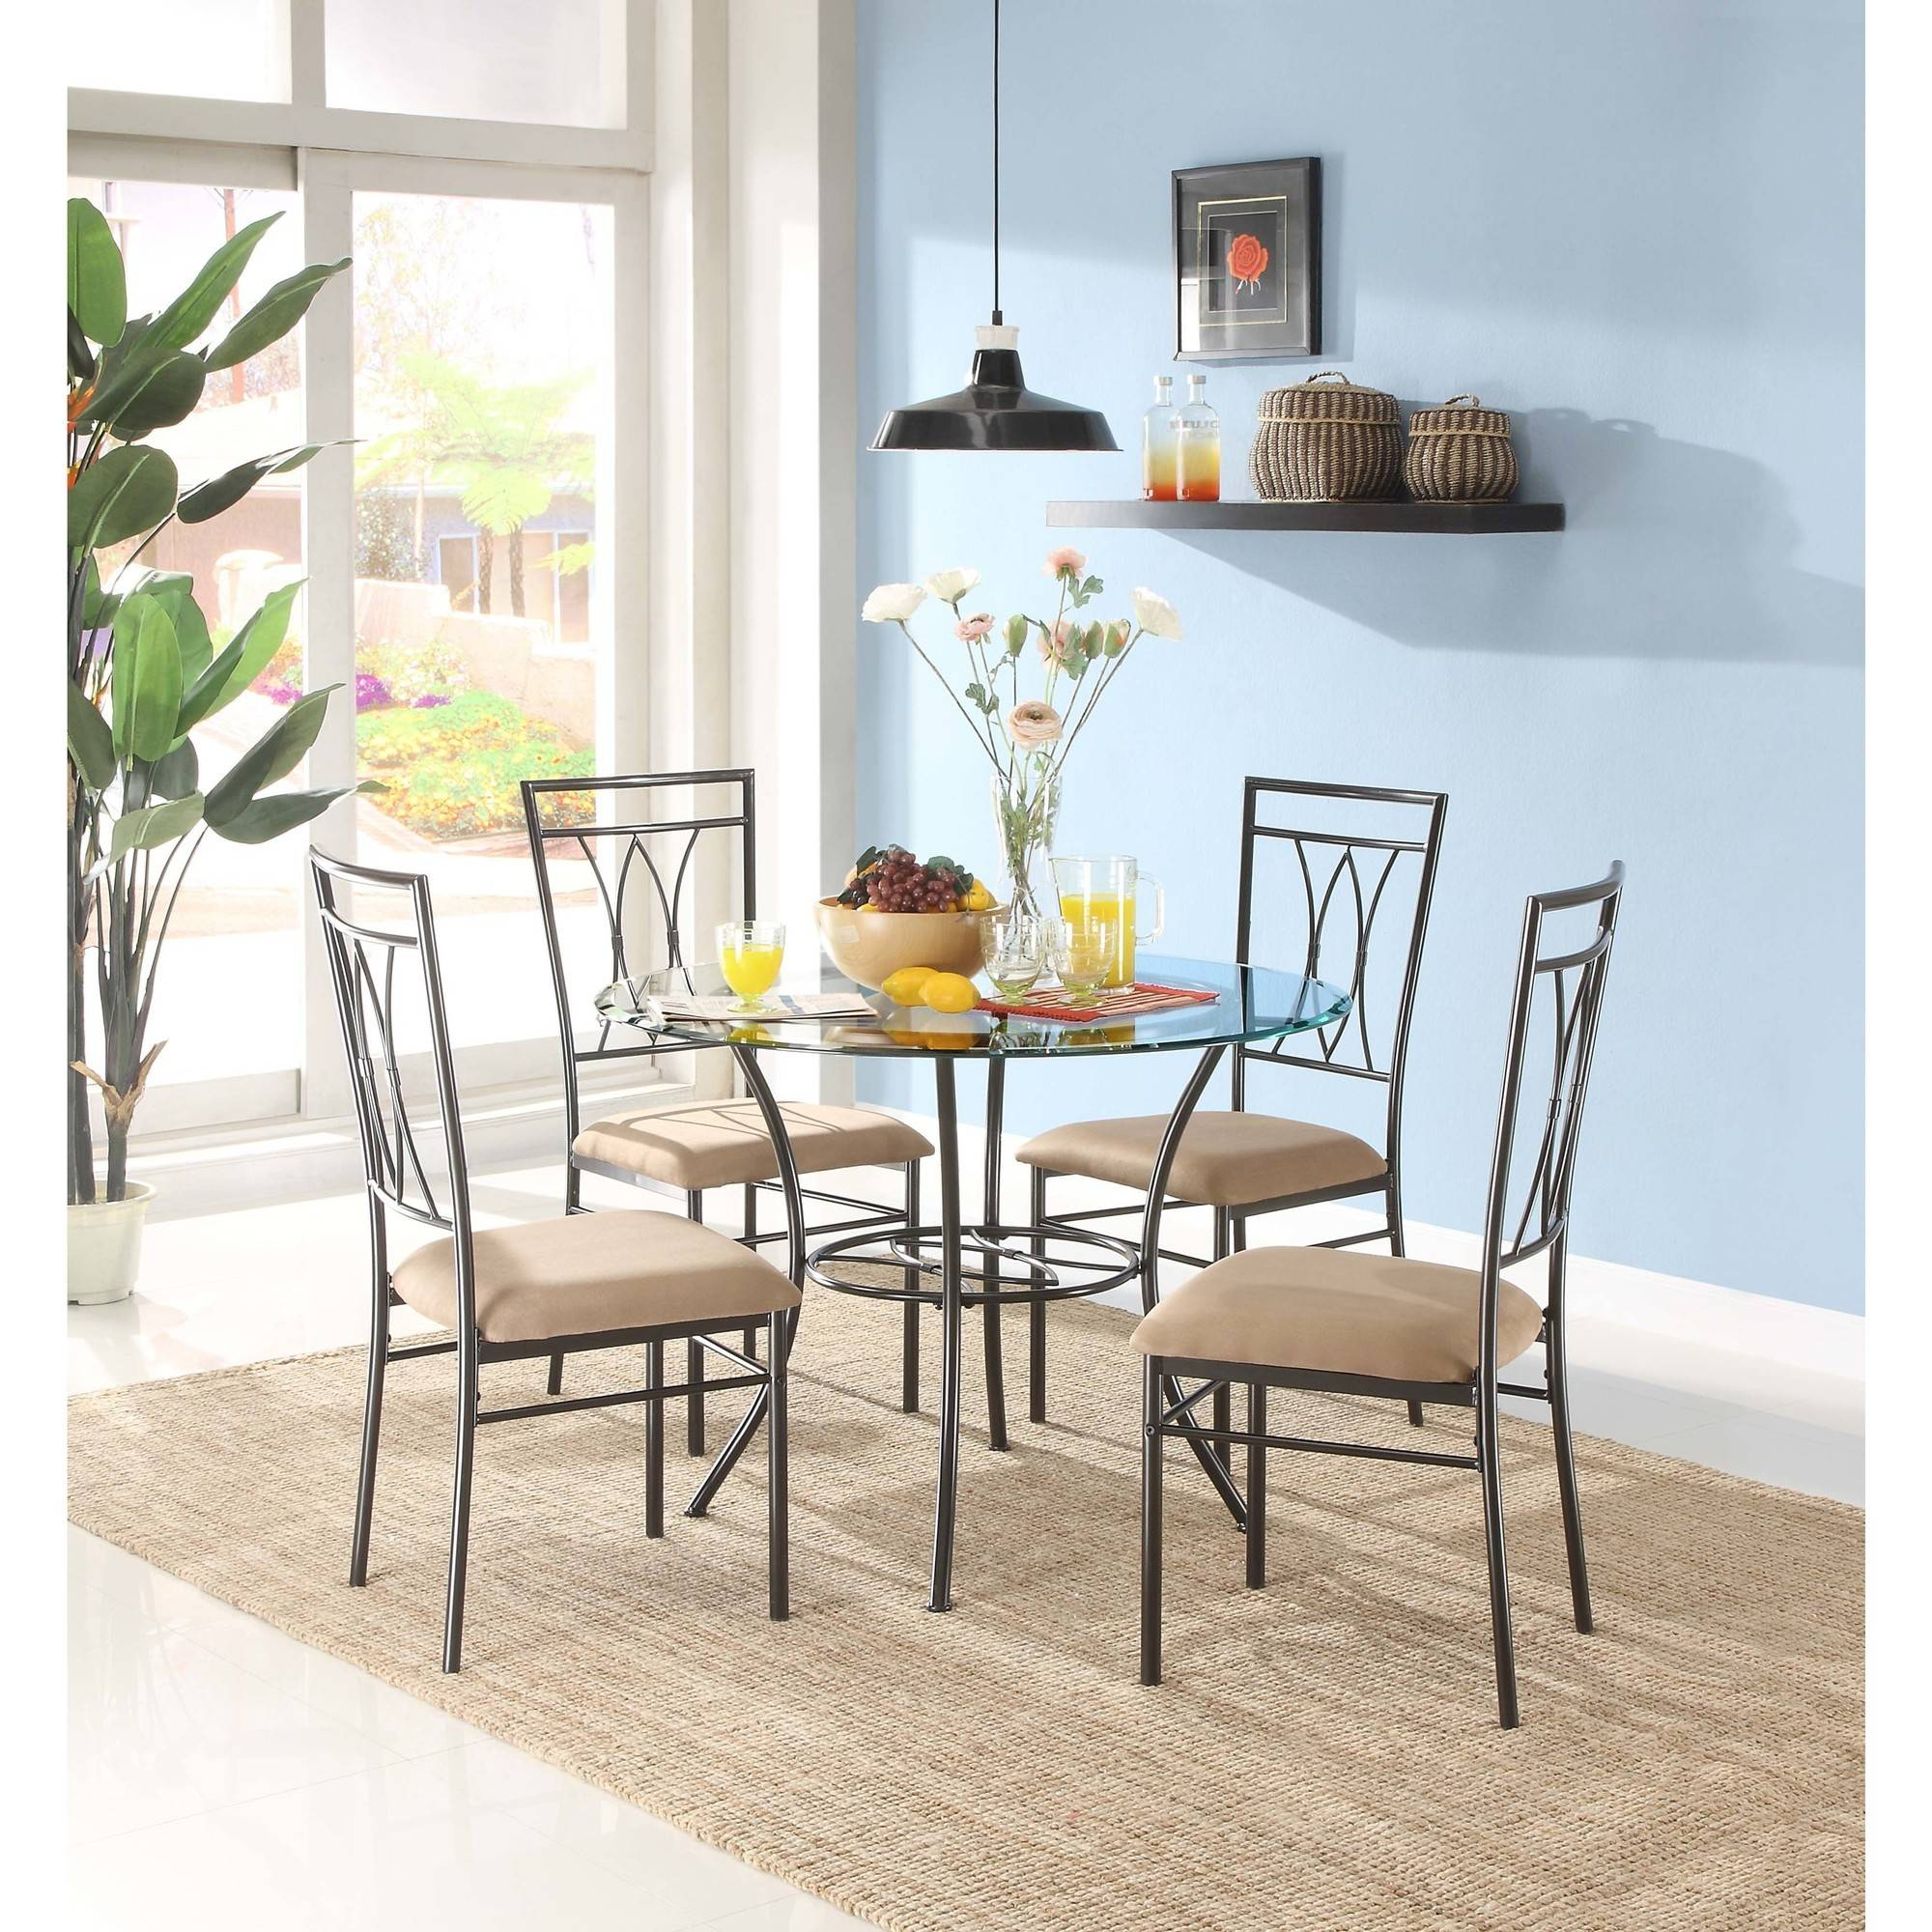 "Mainstays 5piece Glass And Metal Dining Set, 42"" Round. Buy Desk Online. Open Source It Help Desk Ticketing System. Where To Buy A Cheap Desk. Bar Pool Tables For Sale. 8 Foot Banquet Table. Diy Desk Accessories. Reception Desk For Salon. Tall Side Table"